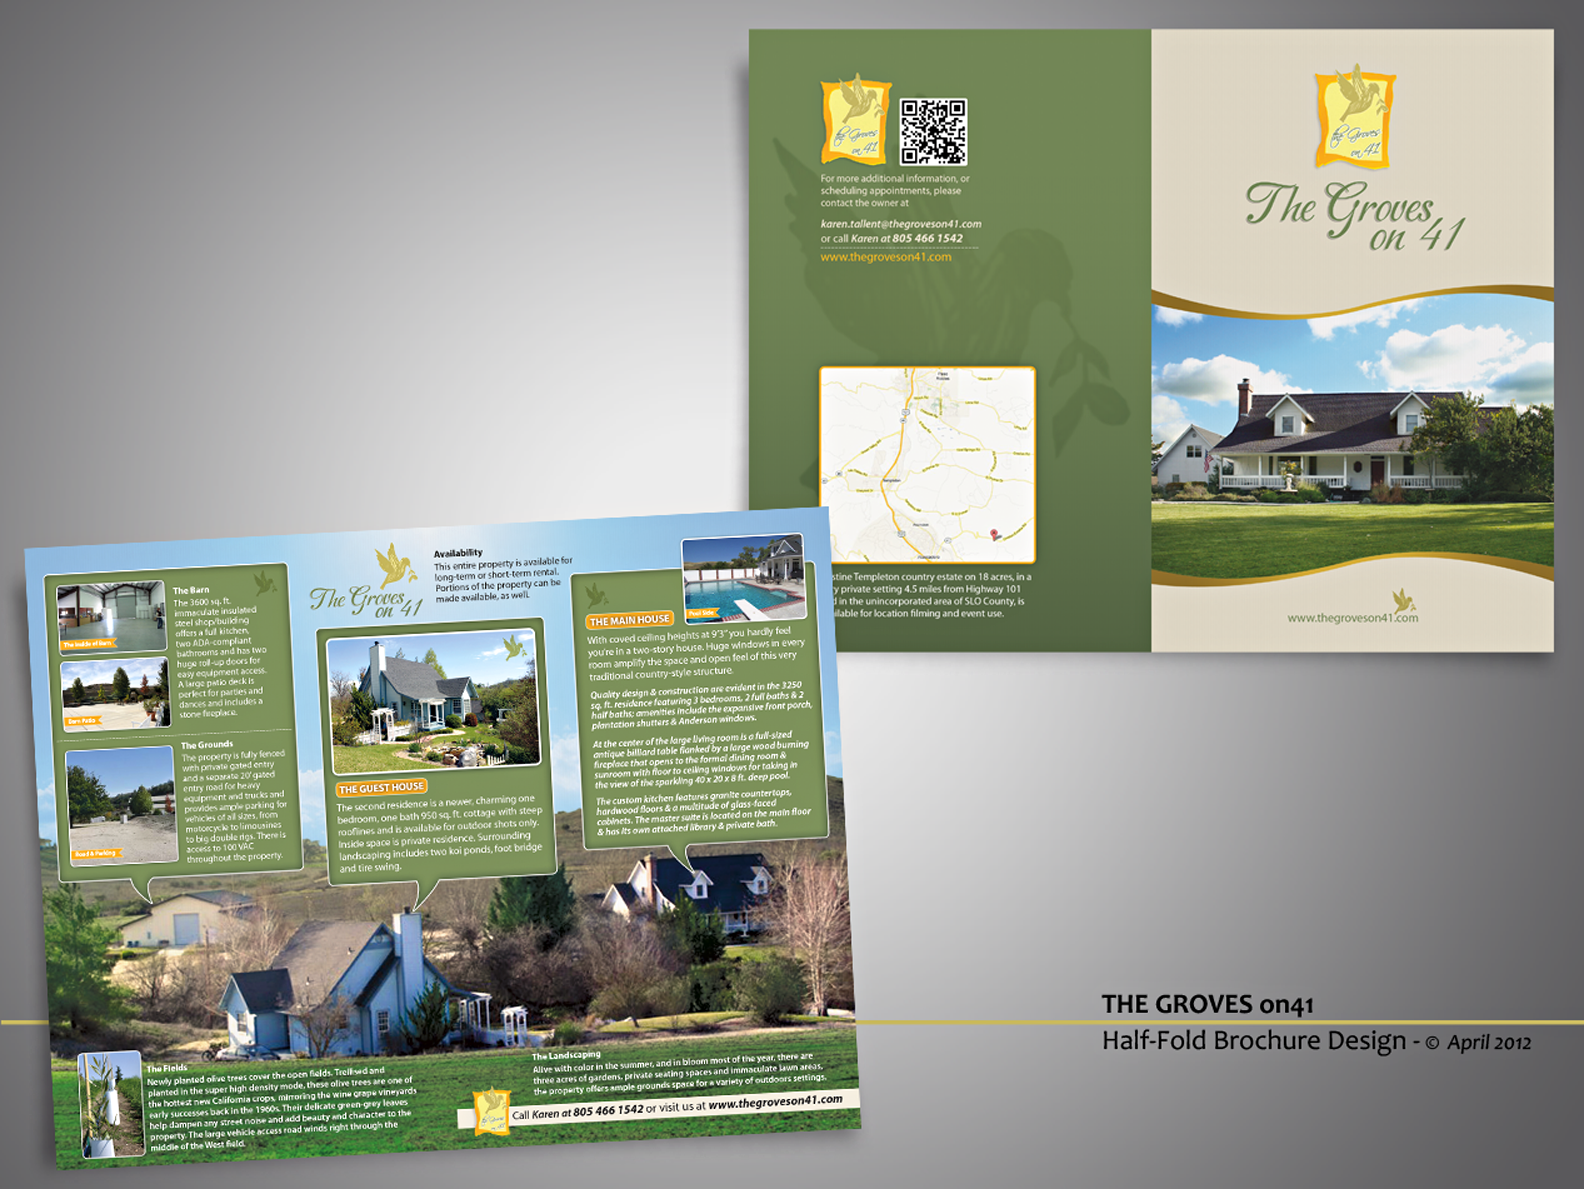 New brochure design wanted for The Groves on 41